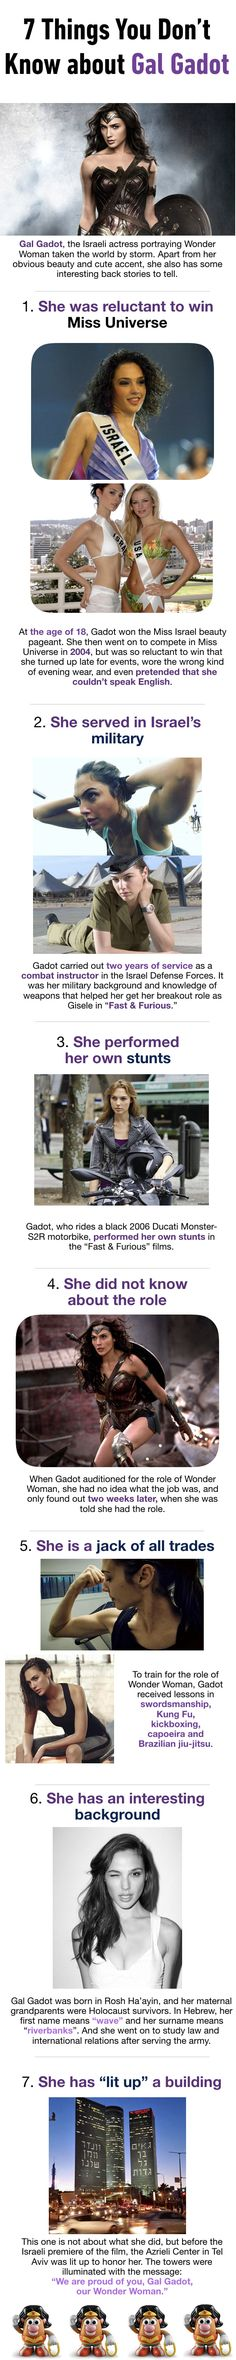 7 Facts You Don't Know About Gal Gadot